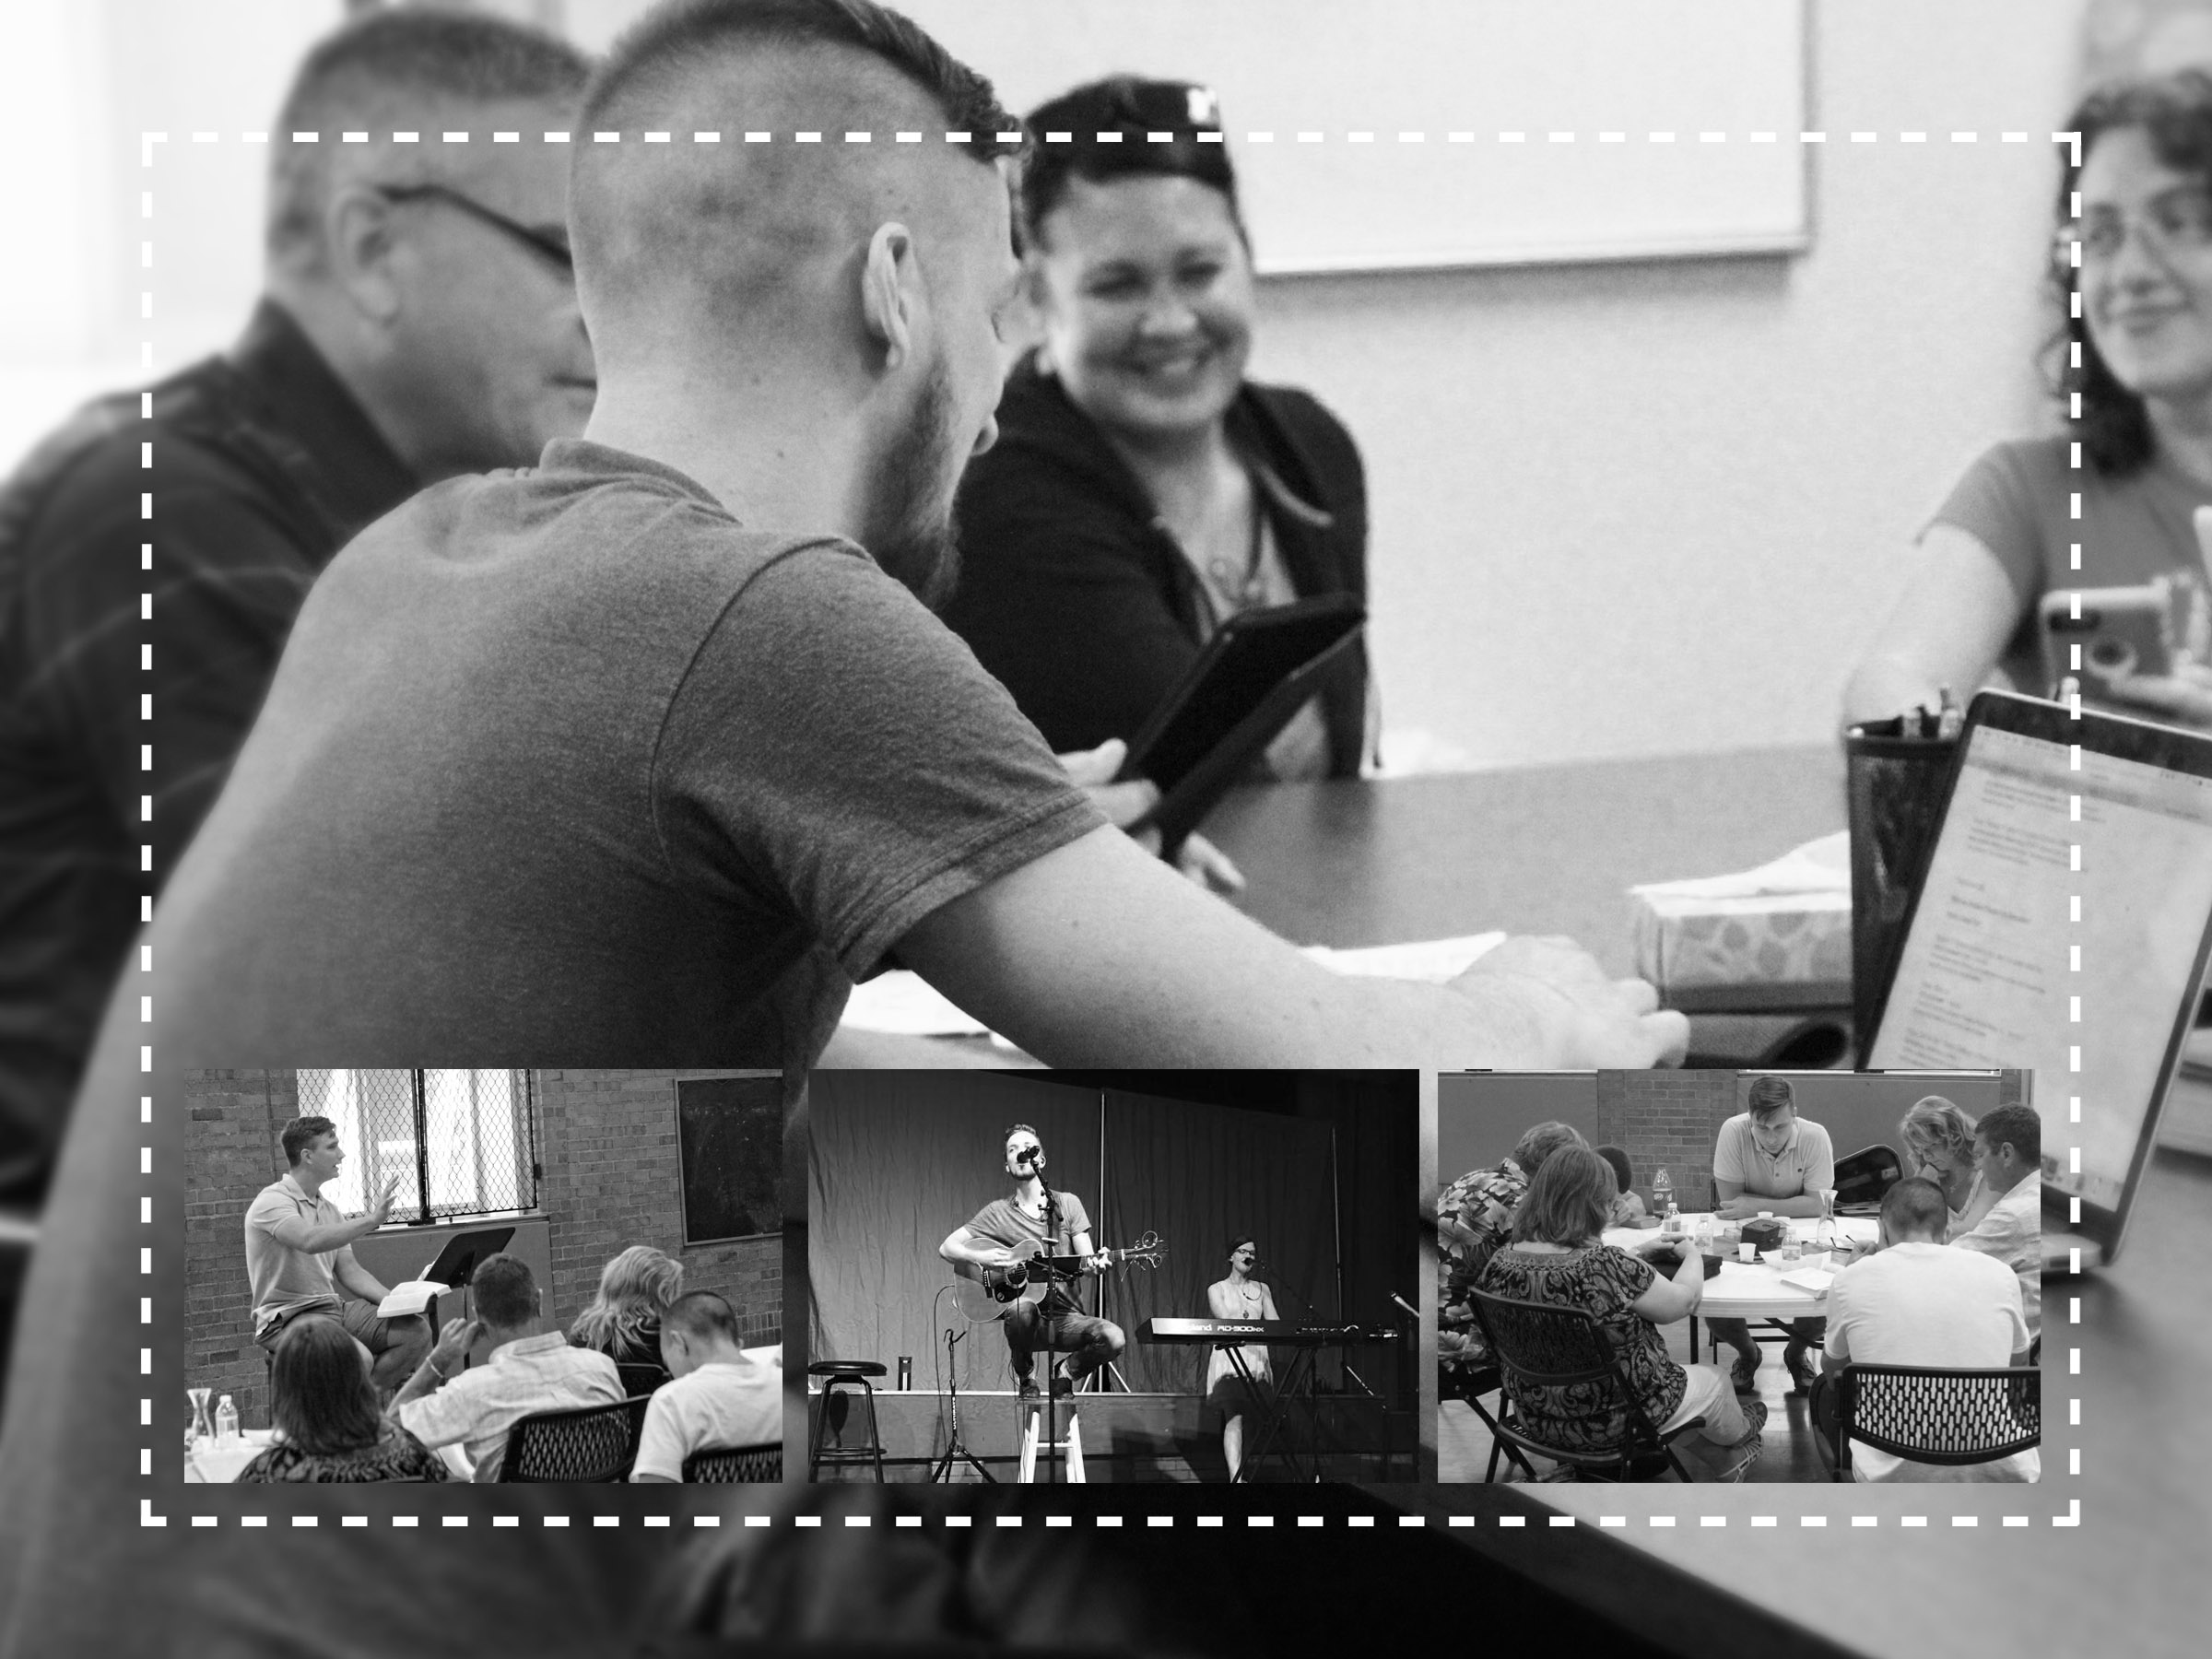 Our Goal - To develop leadership skills in pastors through a 2 year residency and discern with the resident how to best leverage those skills in local church ministry